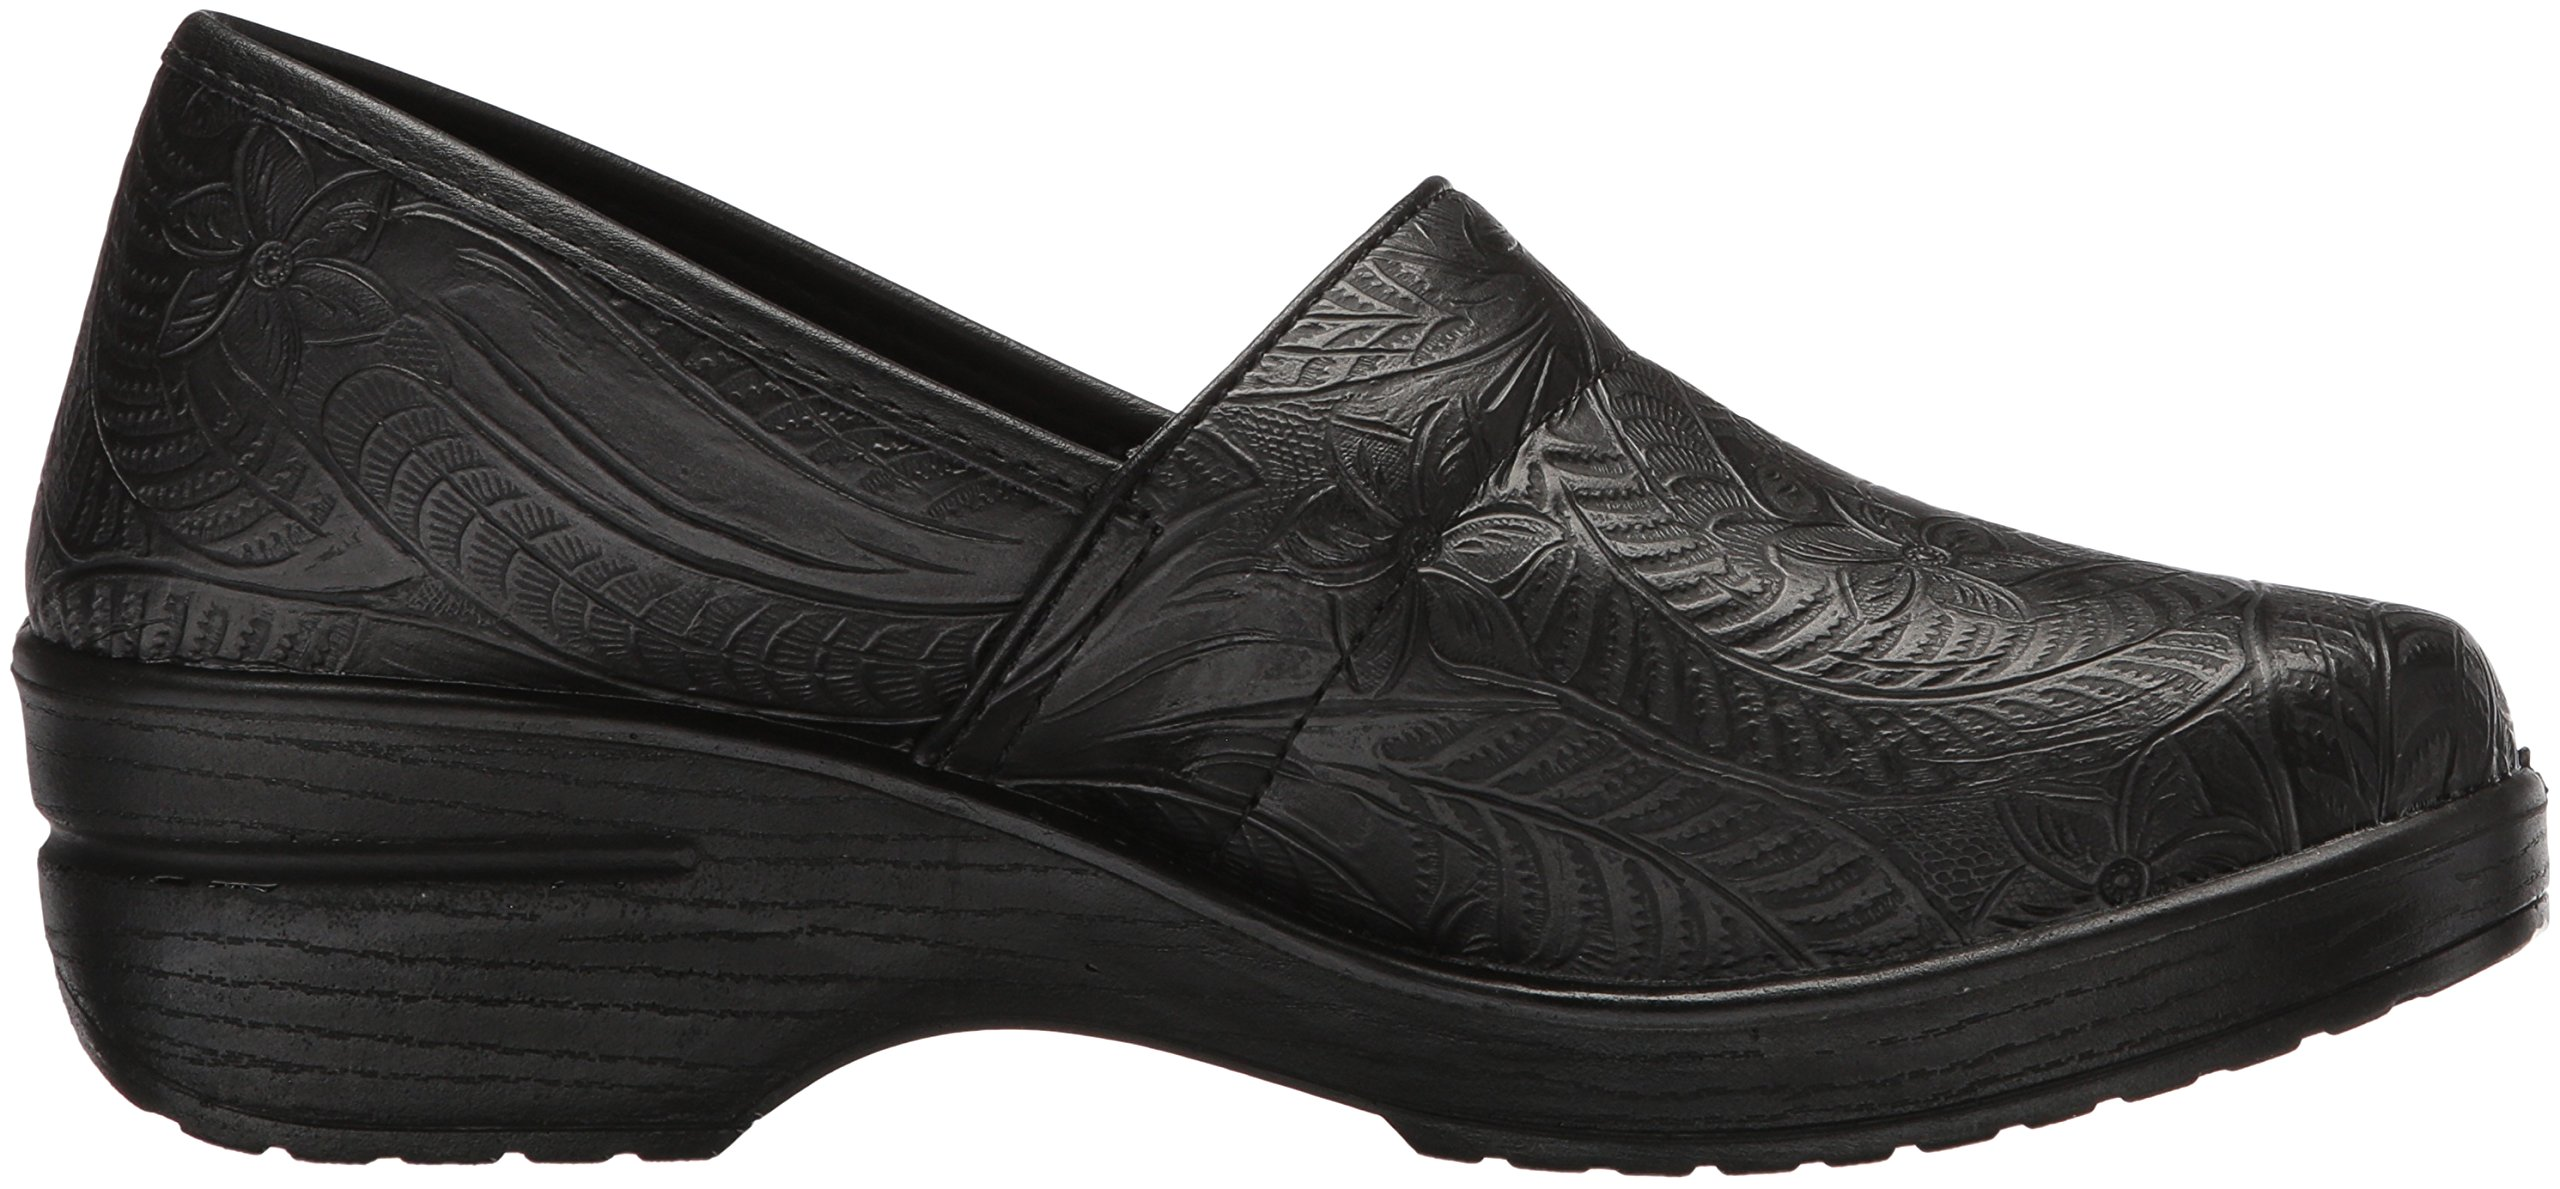 Easy Works Women's Lyndee Health Care Professional Shoe, Black Emboss, 9 W US by Easy Works (Image #6)